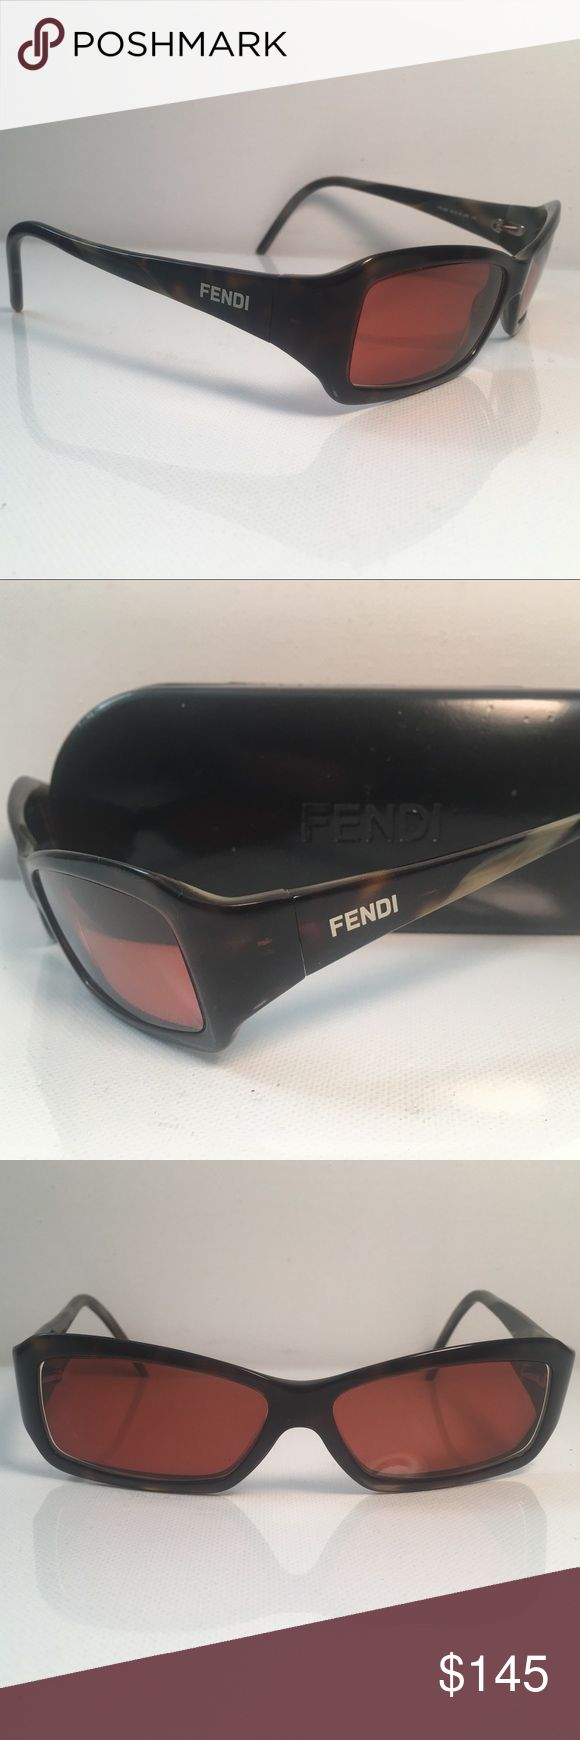 Fendi Tortoise Sunglasses FS 320 🇮🇹 Fendi Tortoise Prescription Sunglasses FS 320 Italy 55 13 200 130. Look your best  on the beach with these Authentic Fendi FS 320 Prescription Eyeglasses.  Made in Italy 🇮🇹 EUC No scratches, comes with case and cleaning cloth Fendi Accessories Glasses